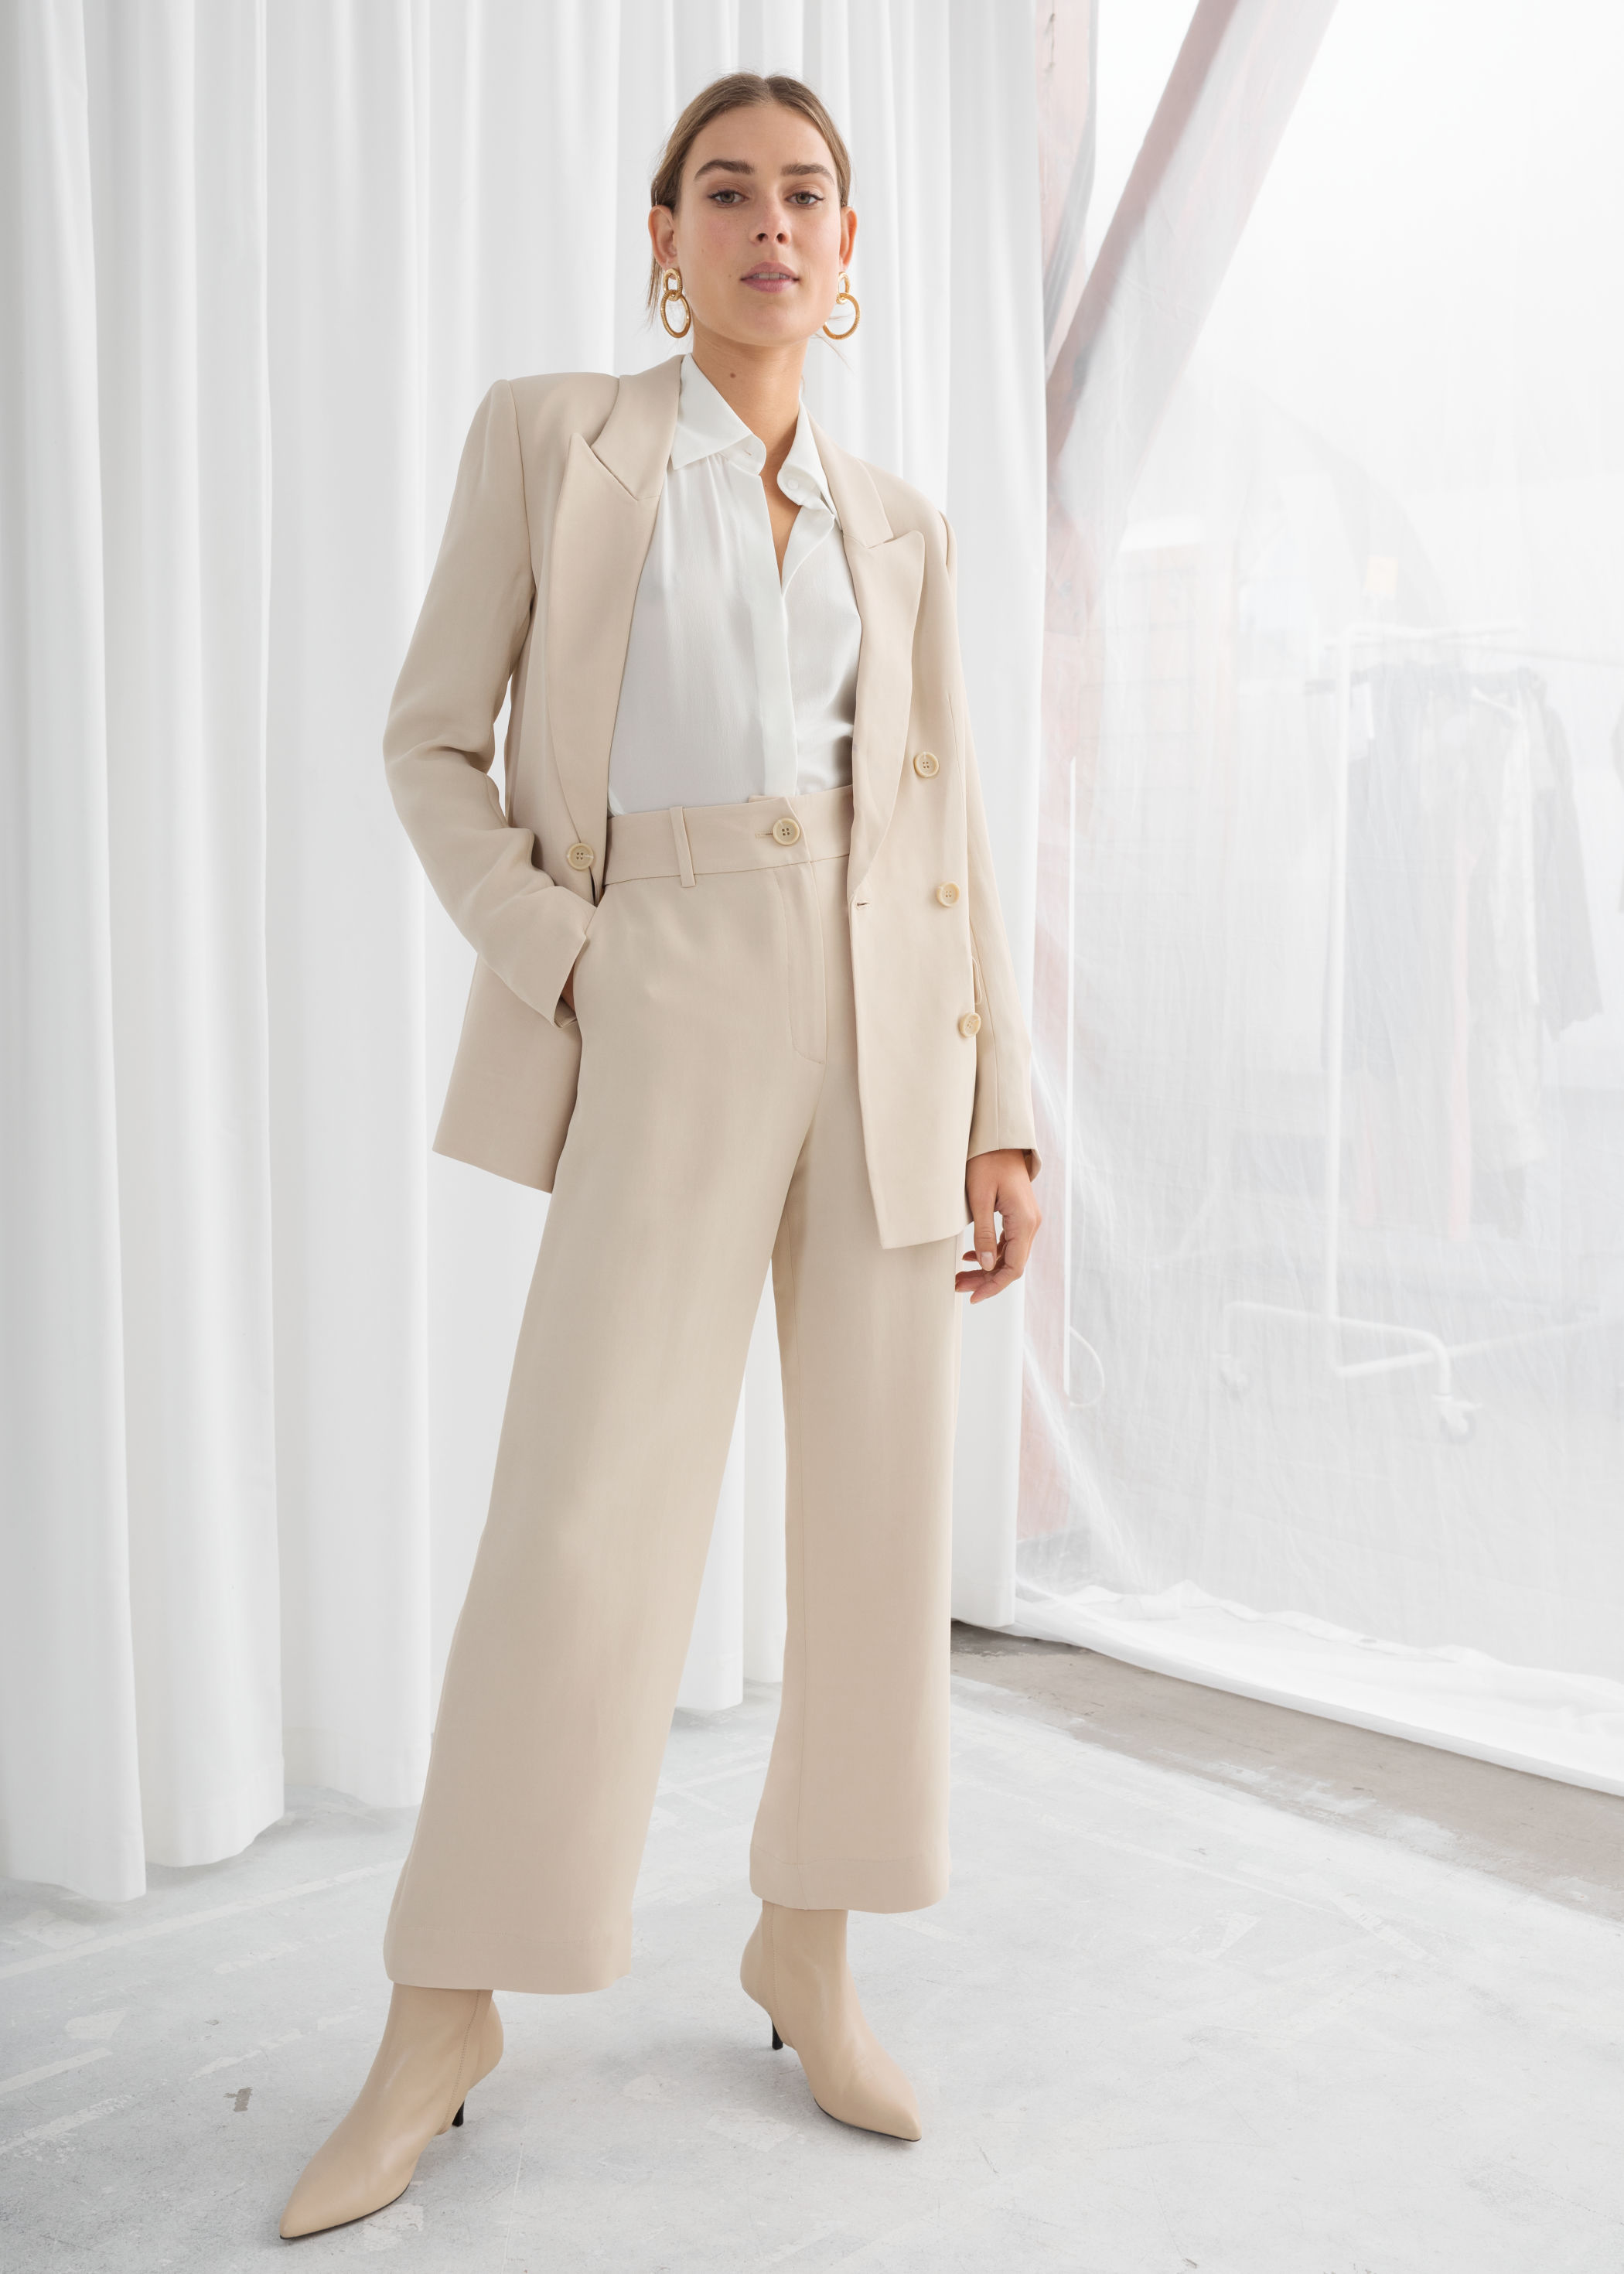 Spring Trend: The White Trouser Suit / Pantsuit